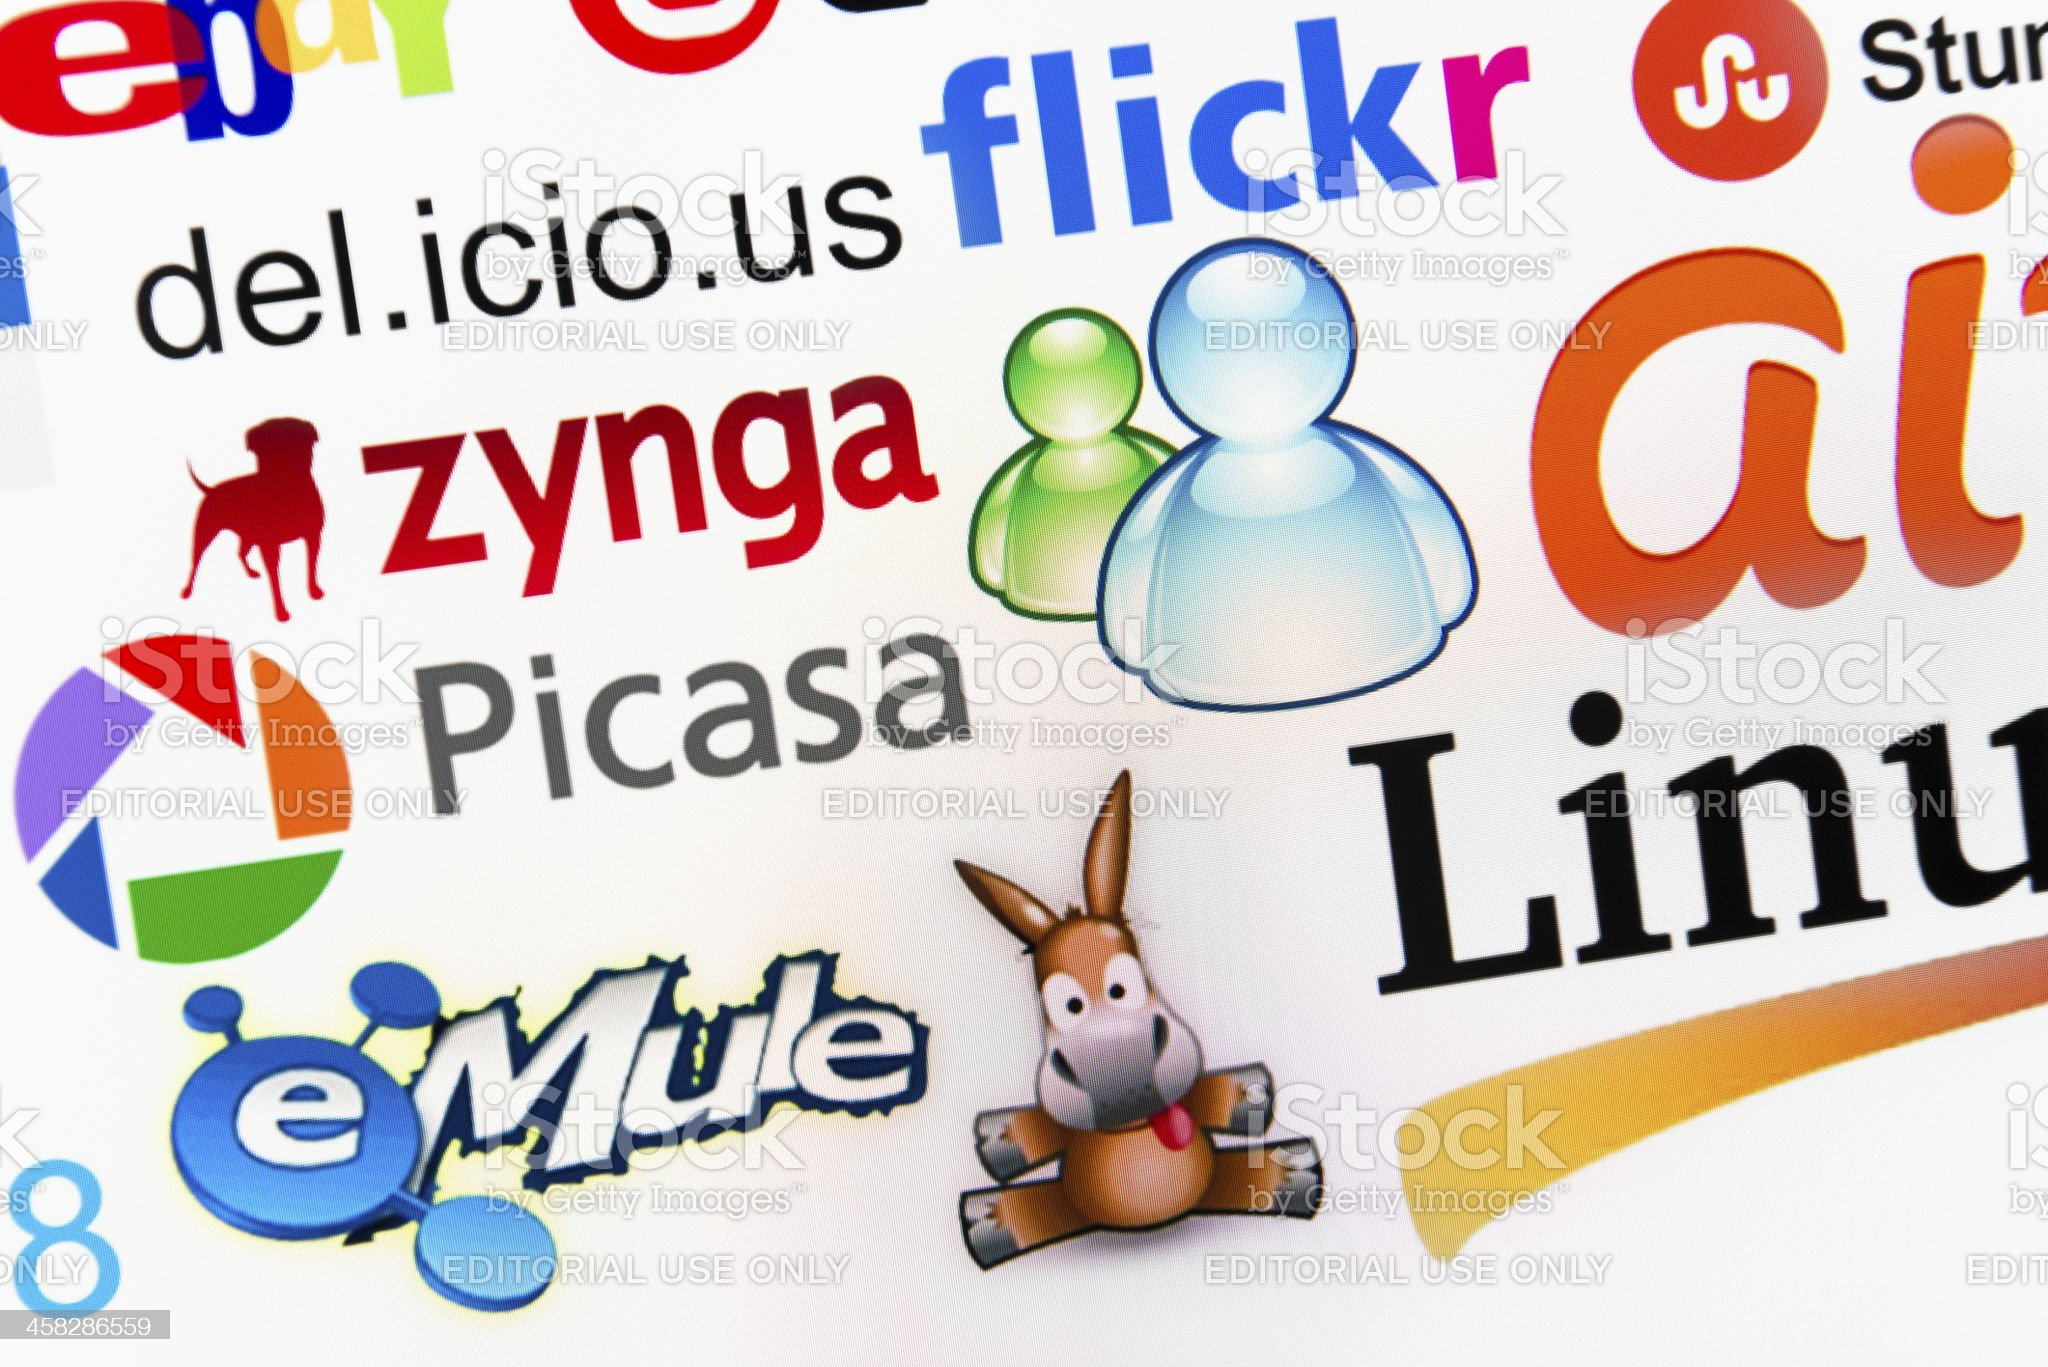 The most famous multimedia brands logotype royalty-free stock photo